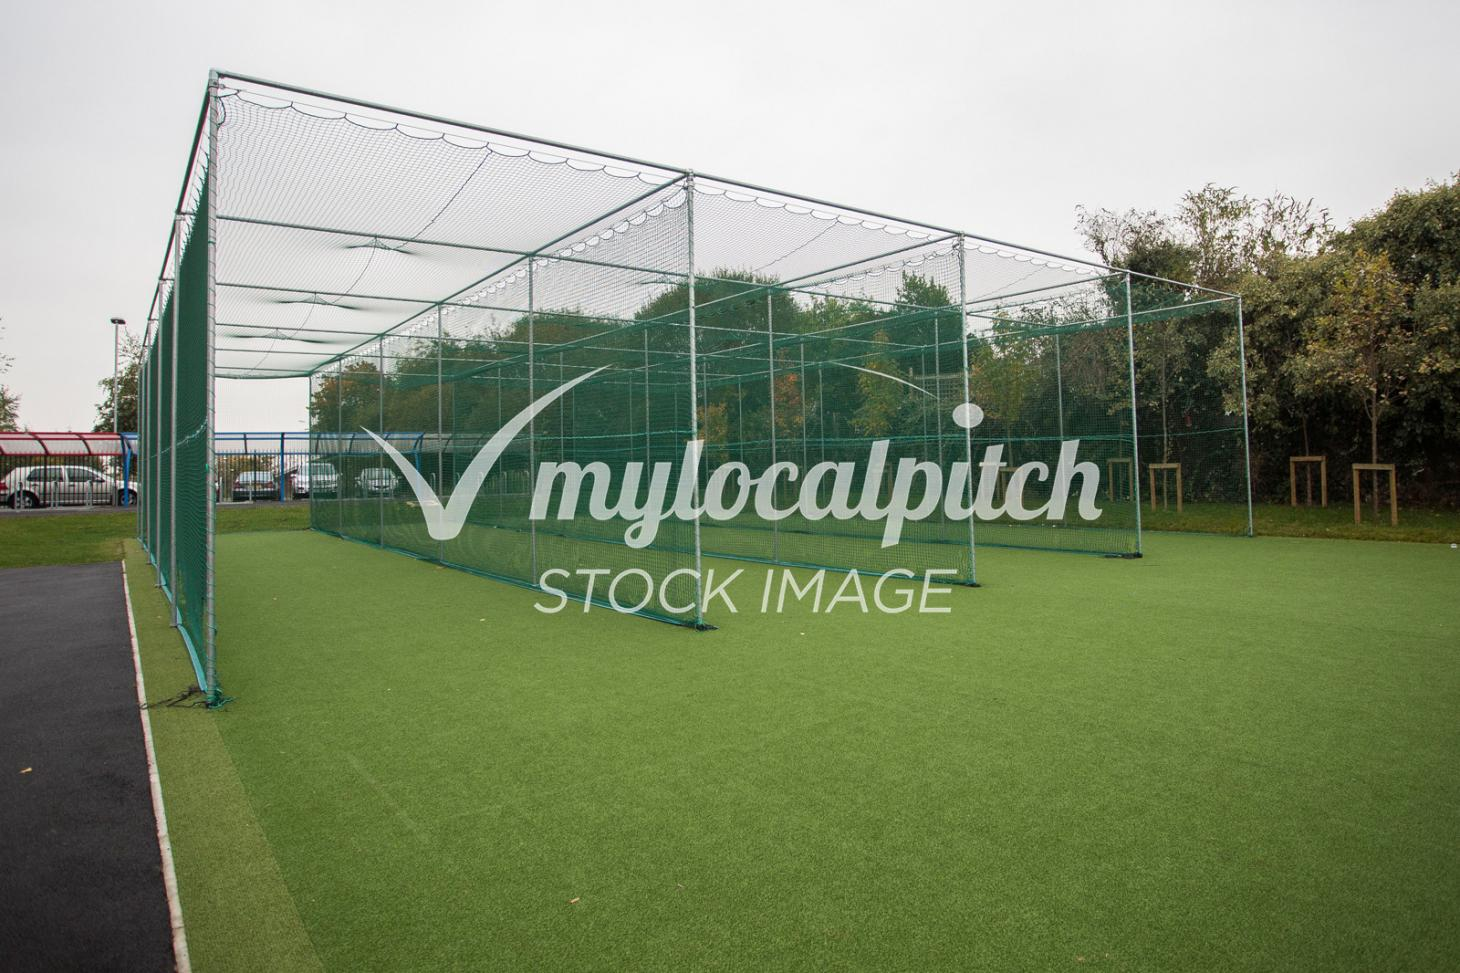 Brondesbury Cricket, Tennis & Squash Club Nets | Artificial cricket facilities